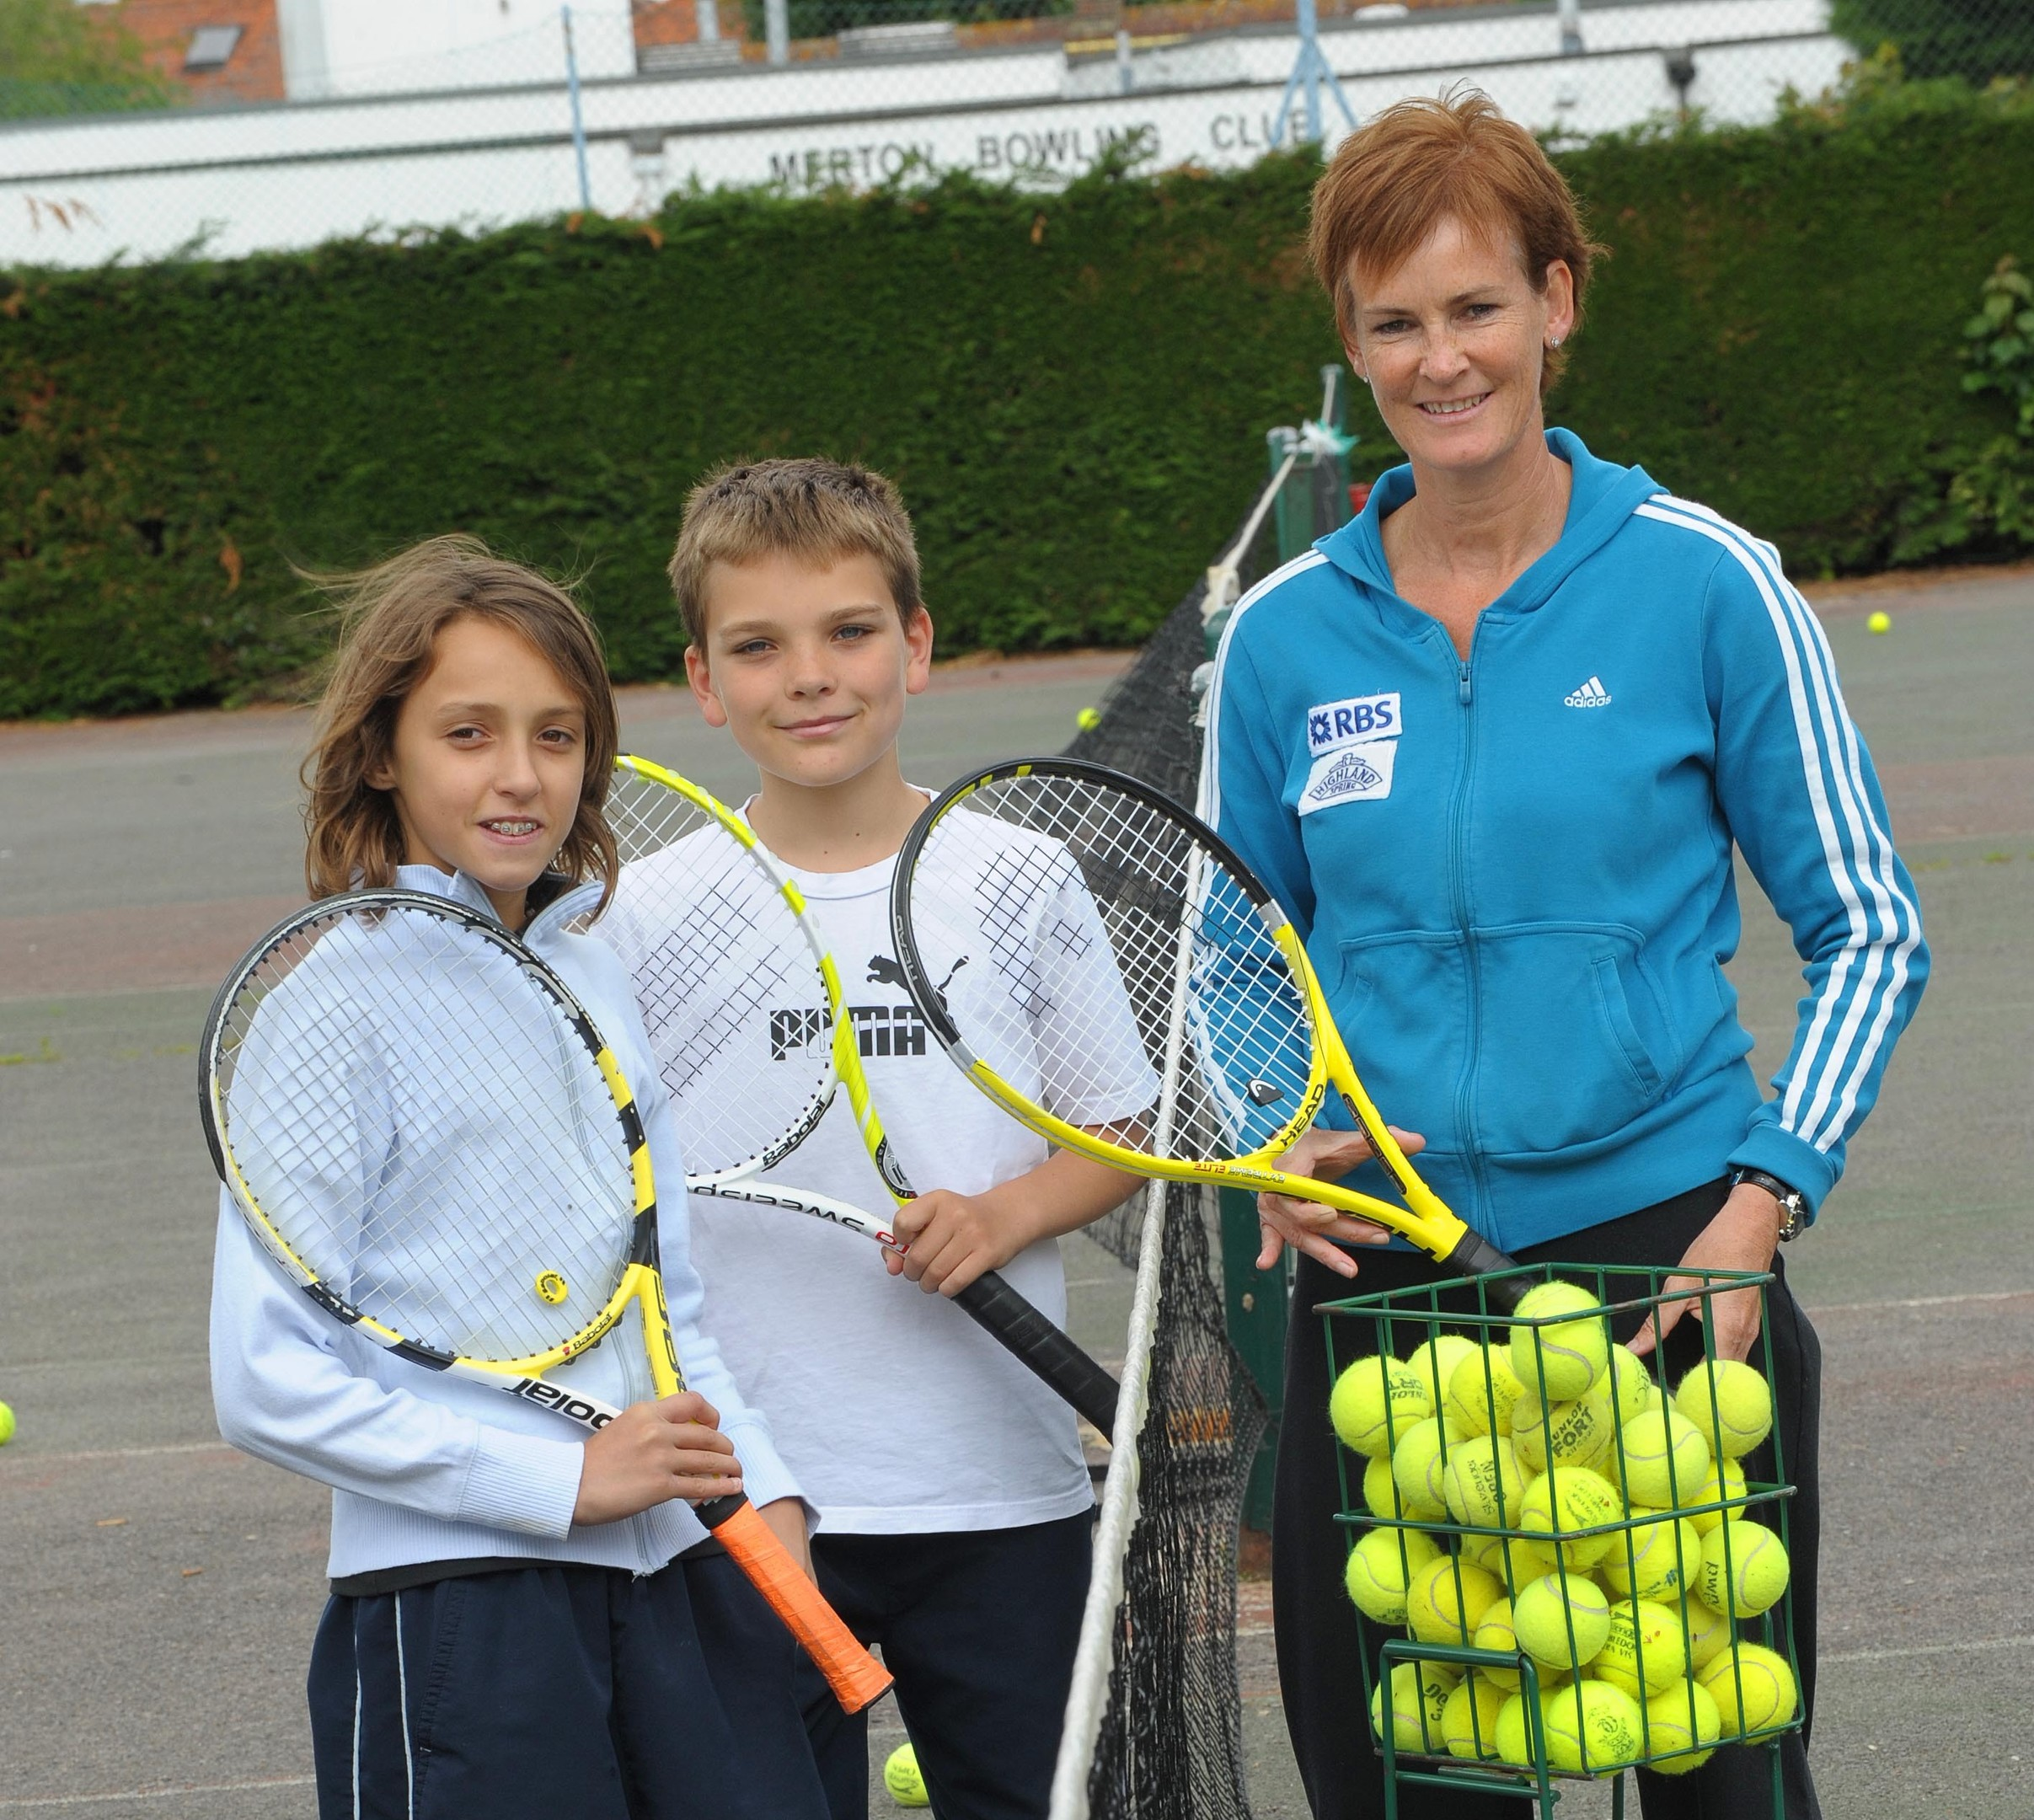 Judy Murray will take the lessons at Bellfield Park next Sunday